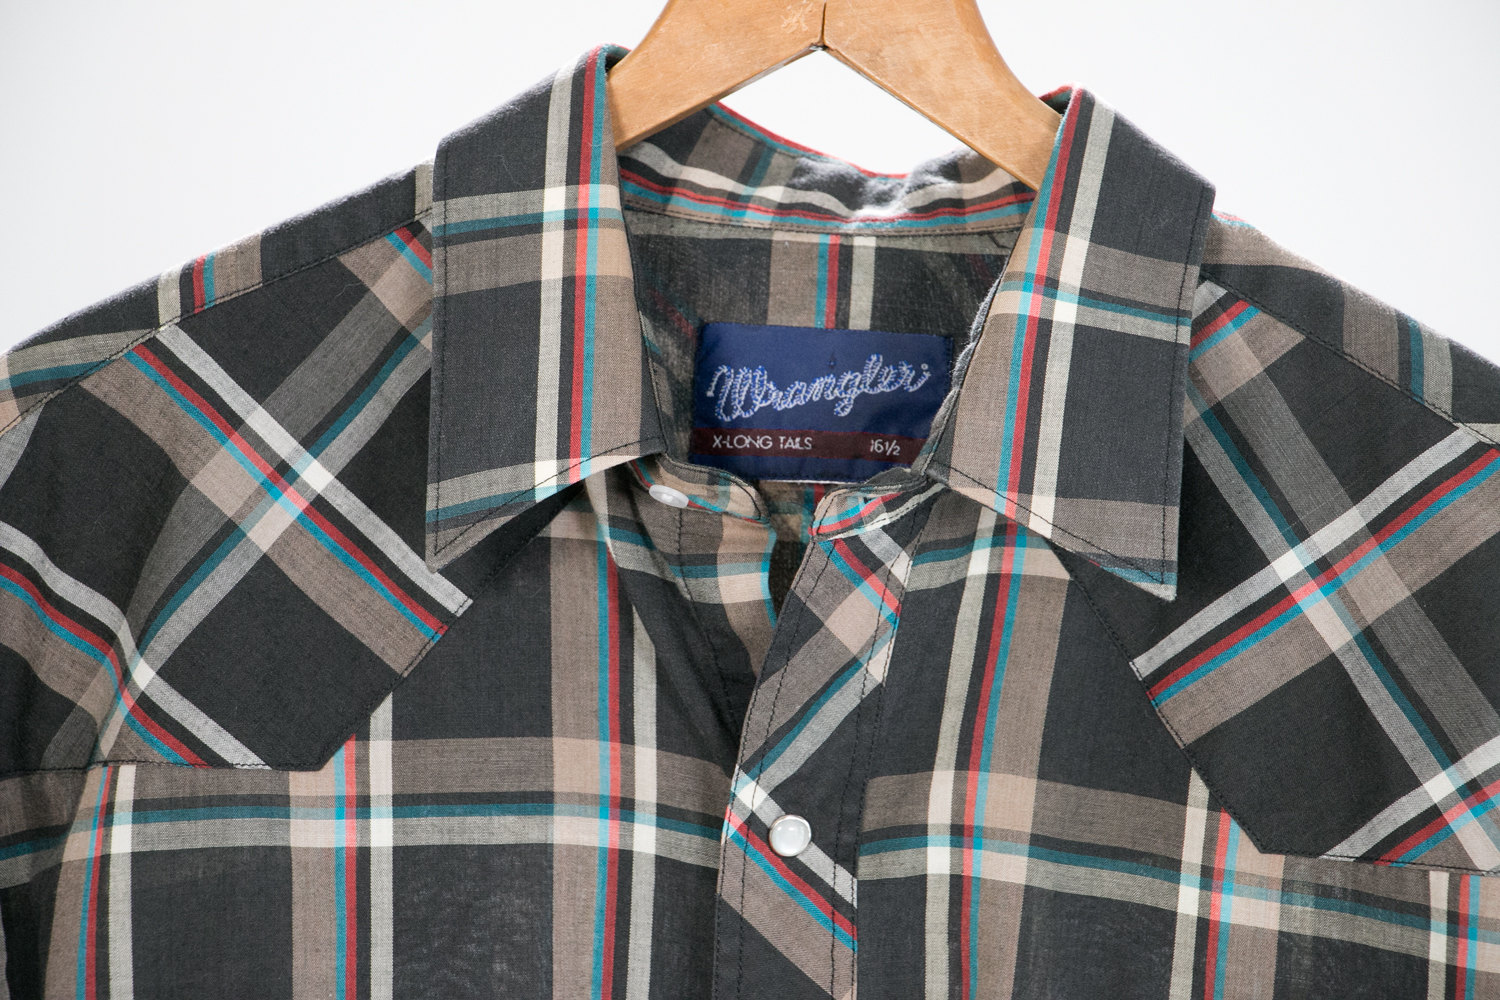 """Vintage 1970's Short Sleeve Wrangler X-Long Tails Plaid Country Shirt 16.5"""", Pearl Snap Buttons - Classic Country Western, Retro, Hipster"""